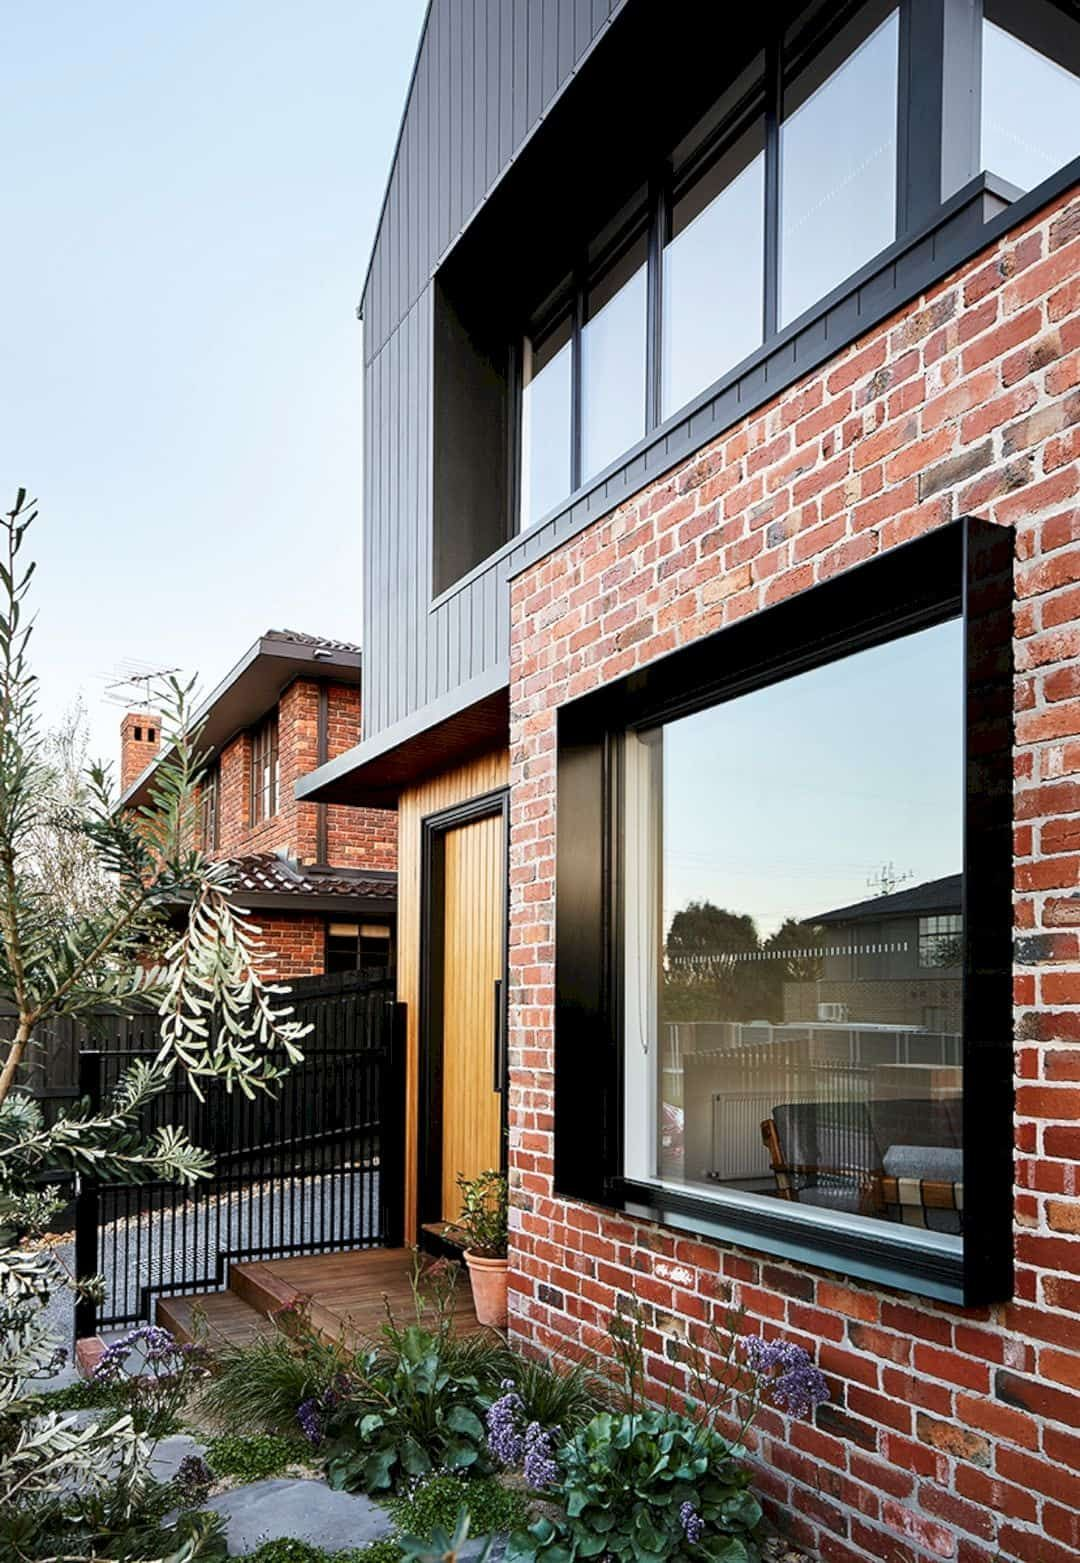 Brick And Wood Finish Architecture Modern Brick House Contemporary House Exterior Wooden House Design